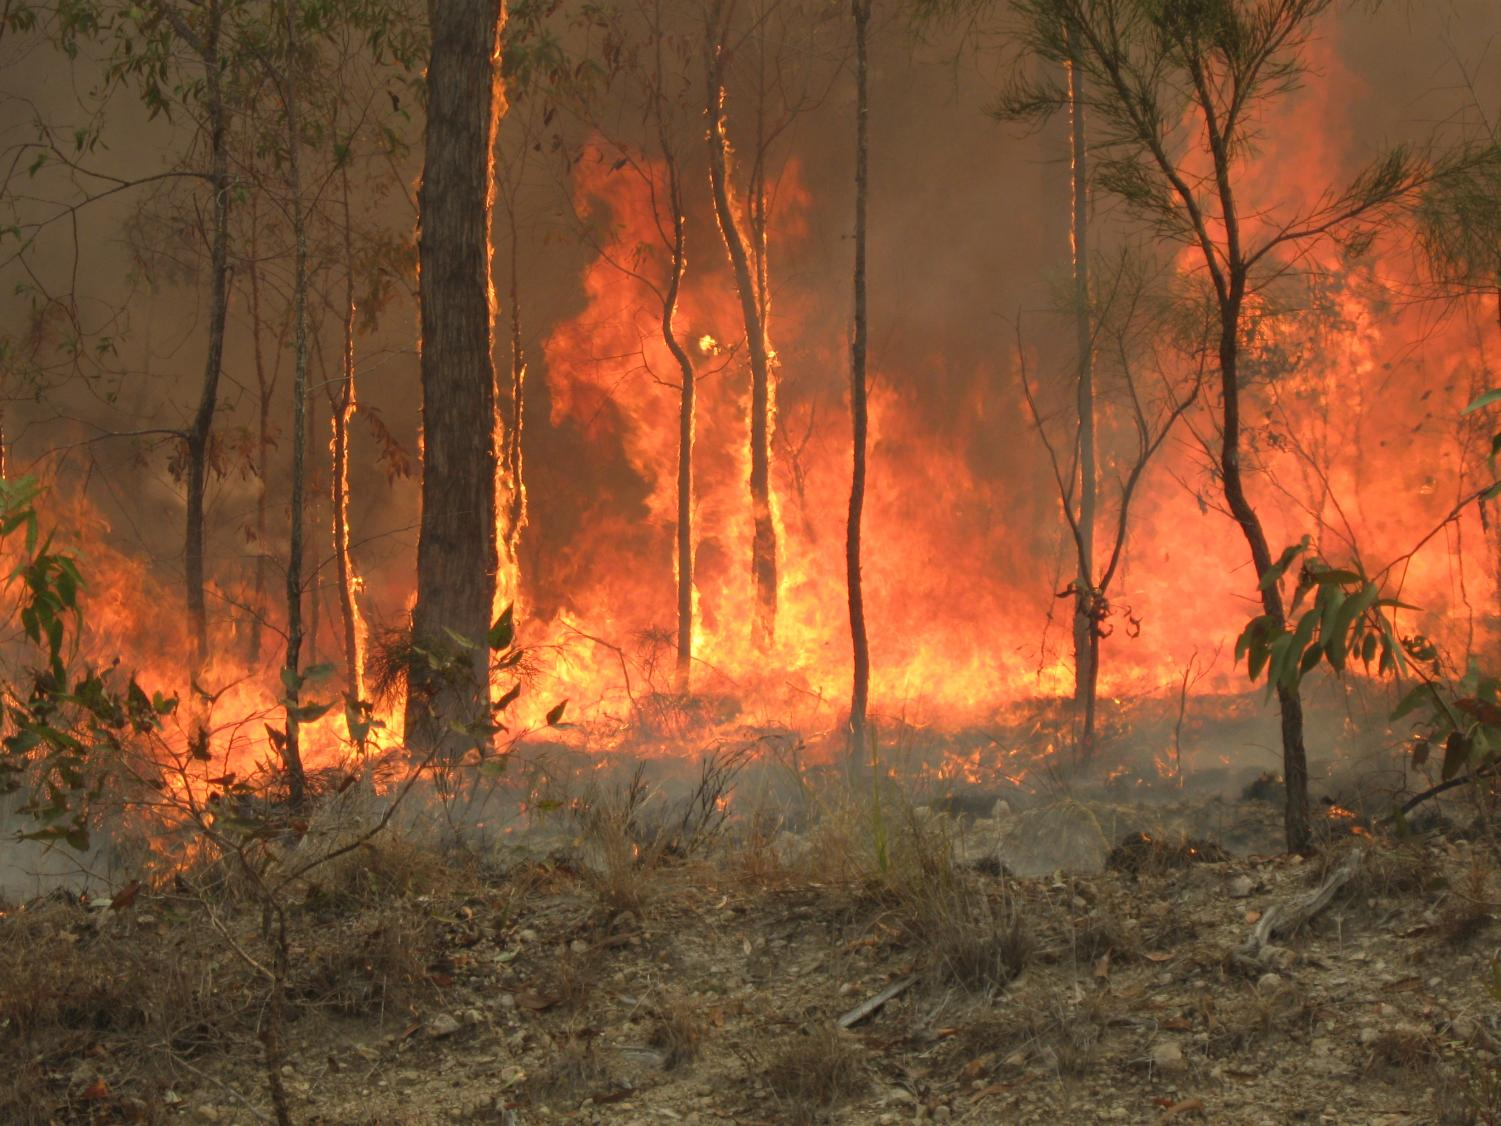 News has recently broke about the bush fires that are ablaze across Australia. The fires are destroying homes, displacing people, and killing wildlife. Action must be taken to put a stop to this devastation.